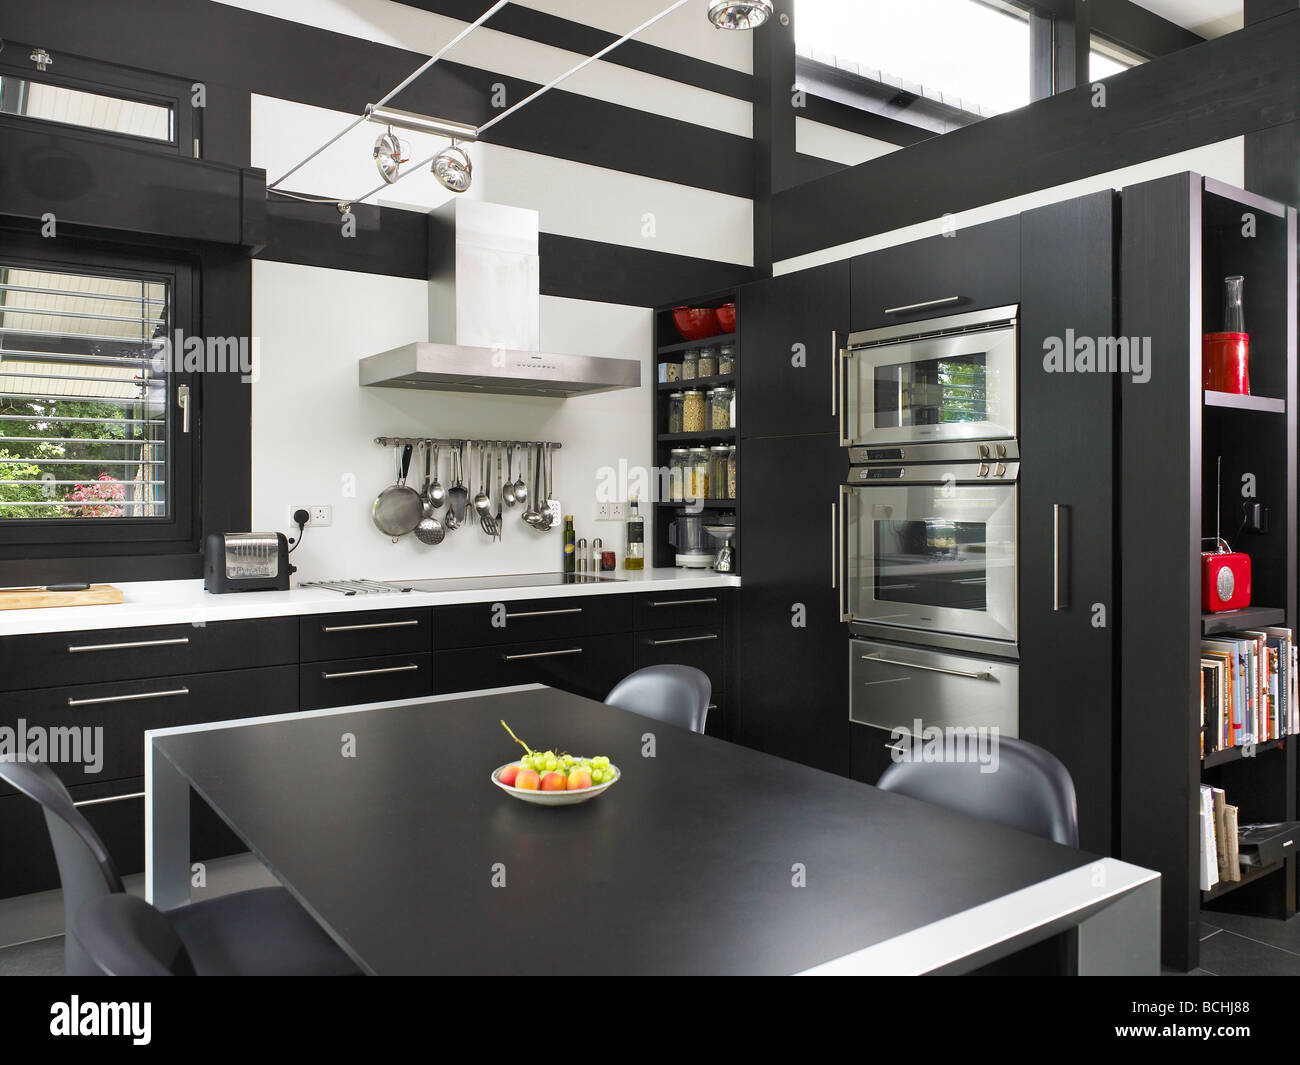 Self Build Huf Haus Kitchen Interior